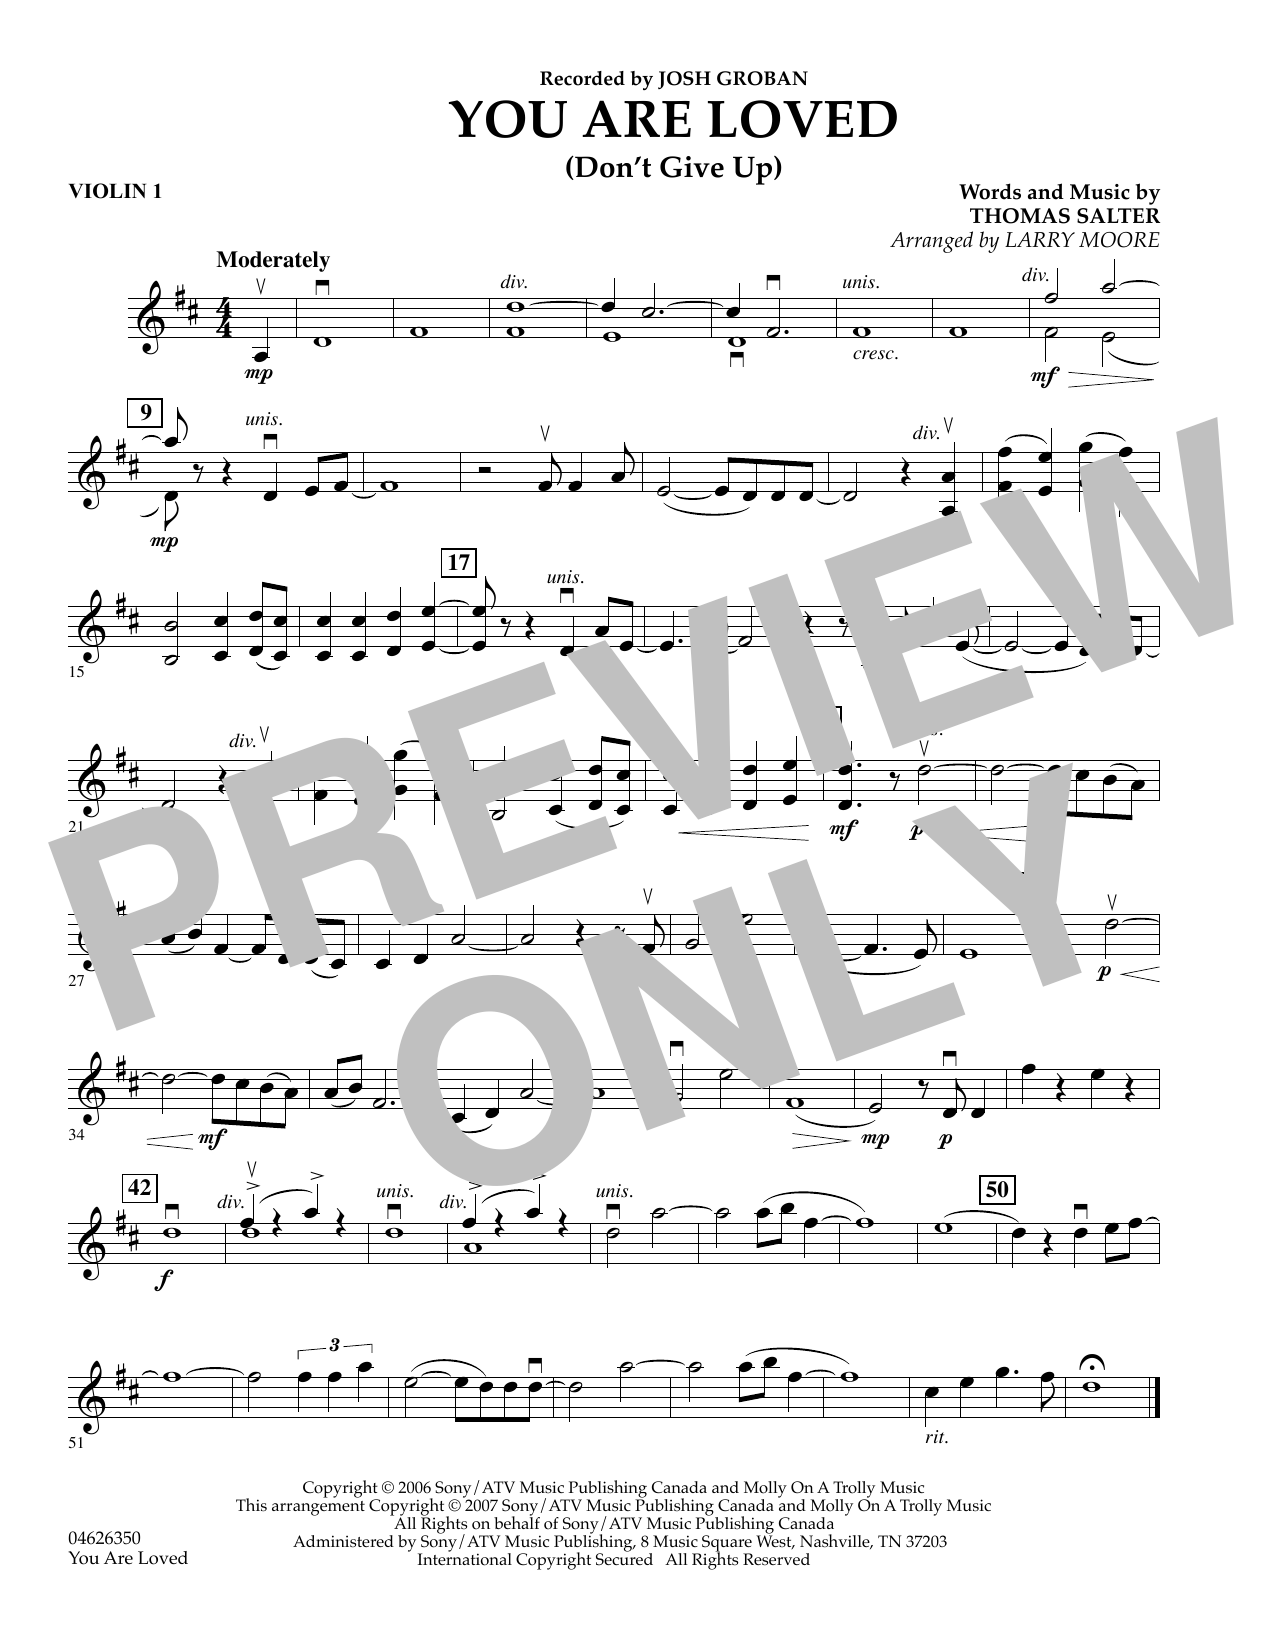 You Are Loved (Don't Give Up) - Violin 1 sheet music